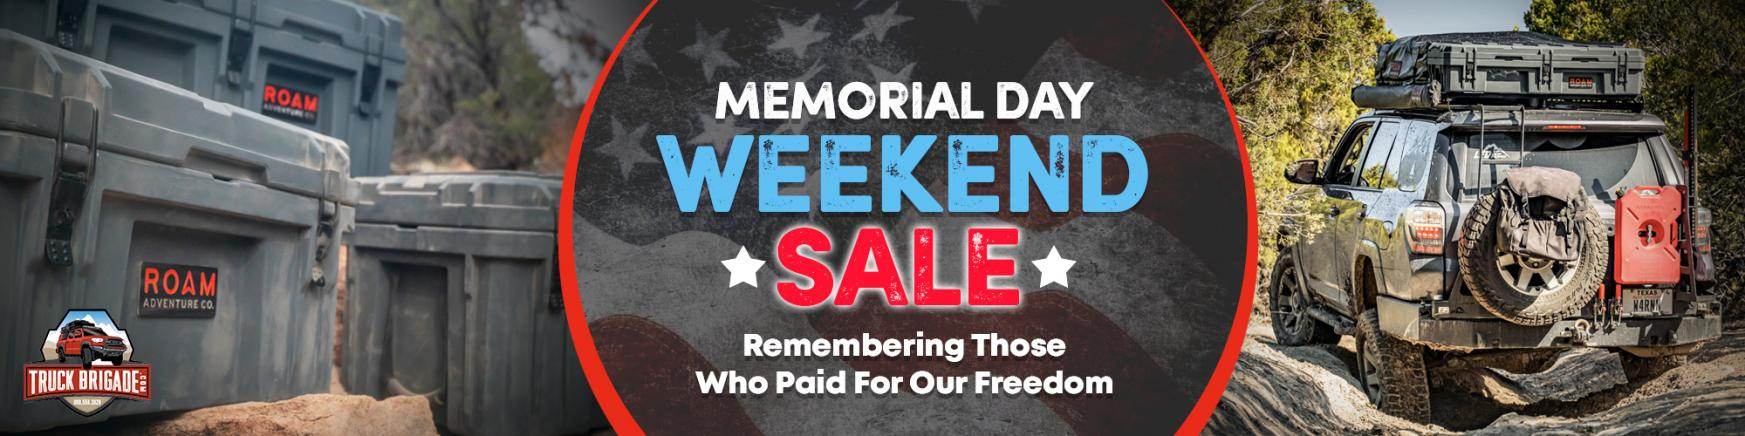 Memorial Day Sale-memorial-day-home-page-banner-jpg